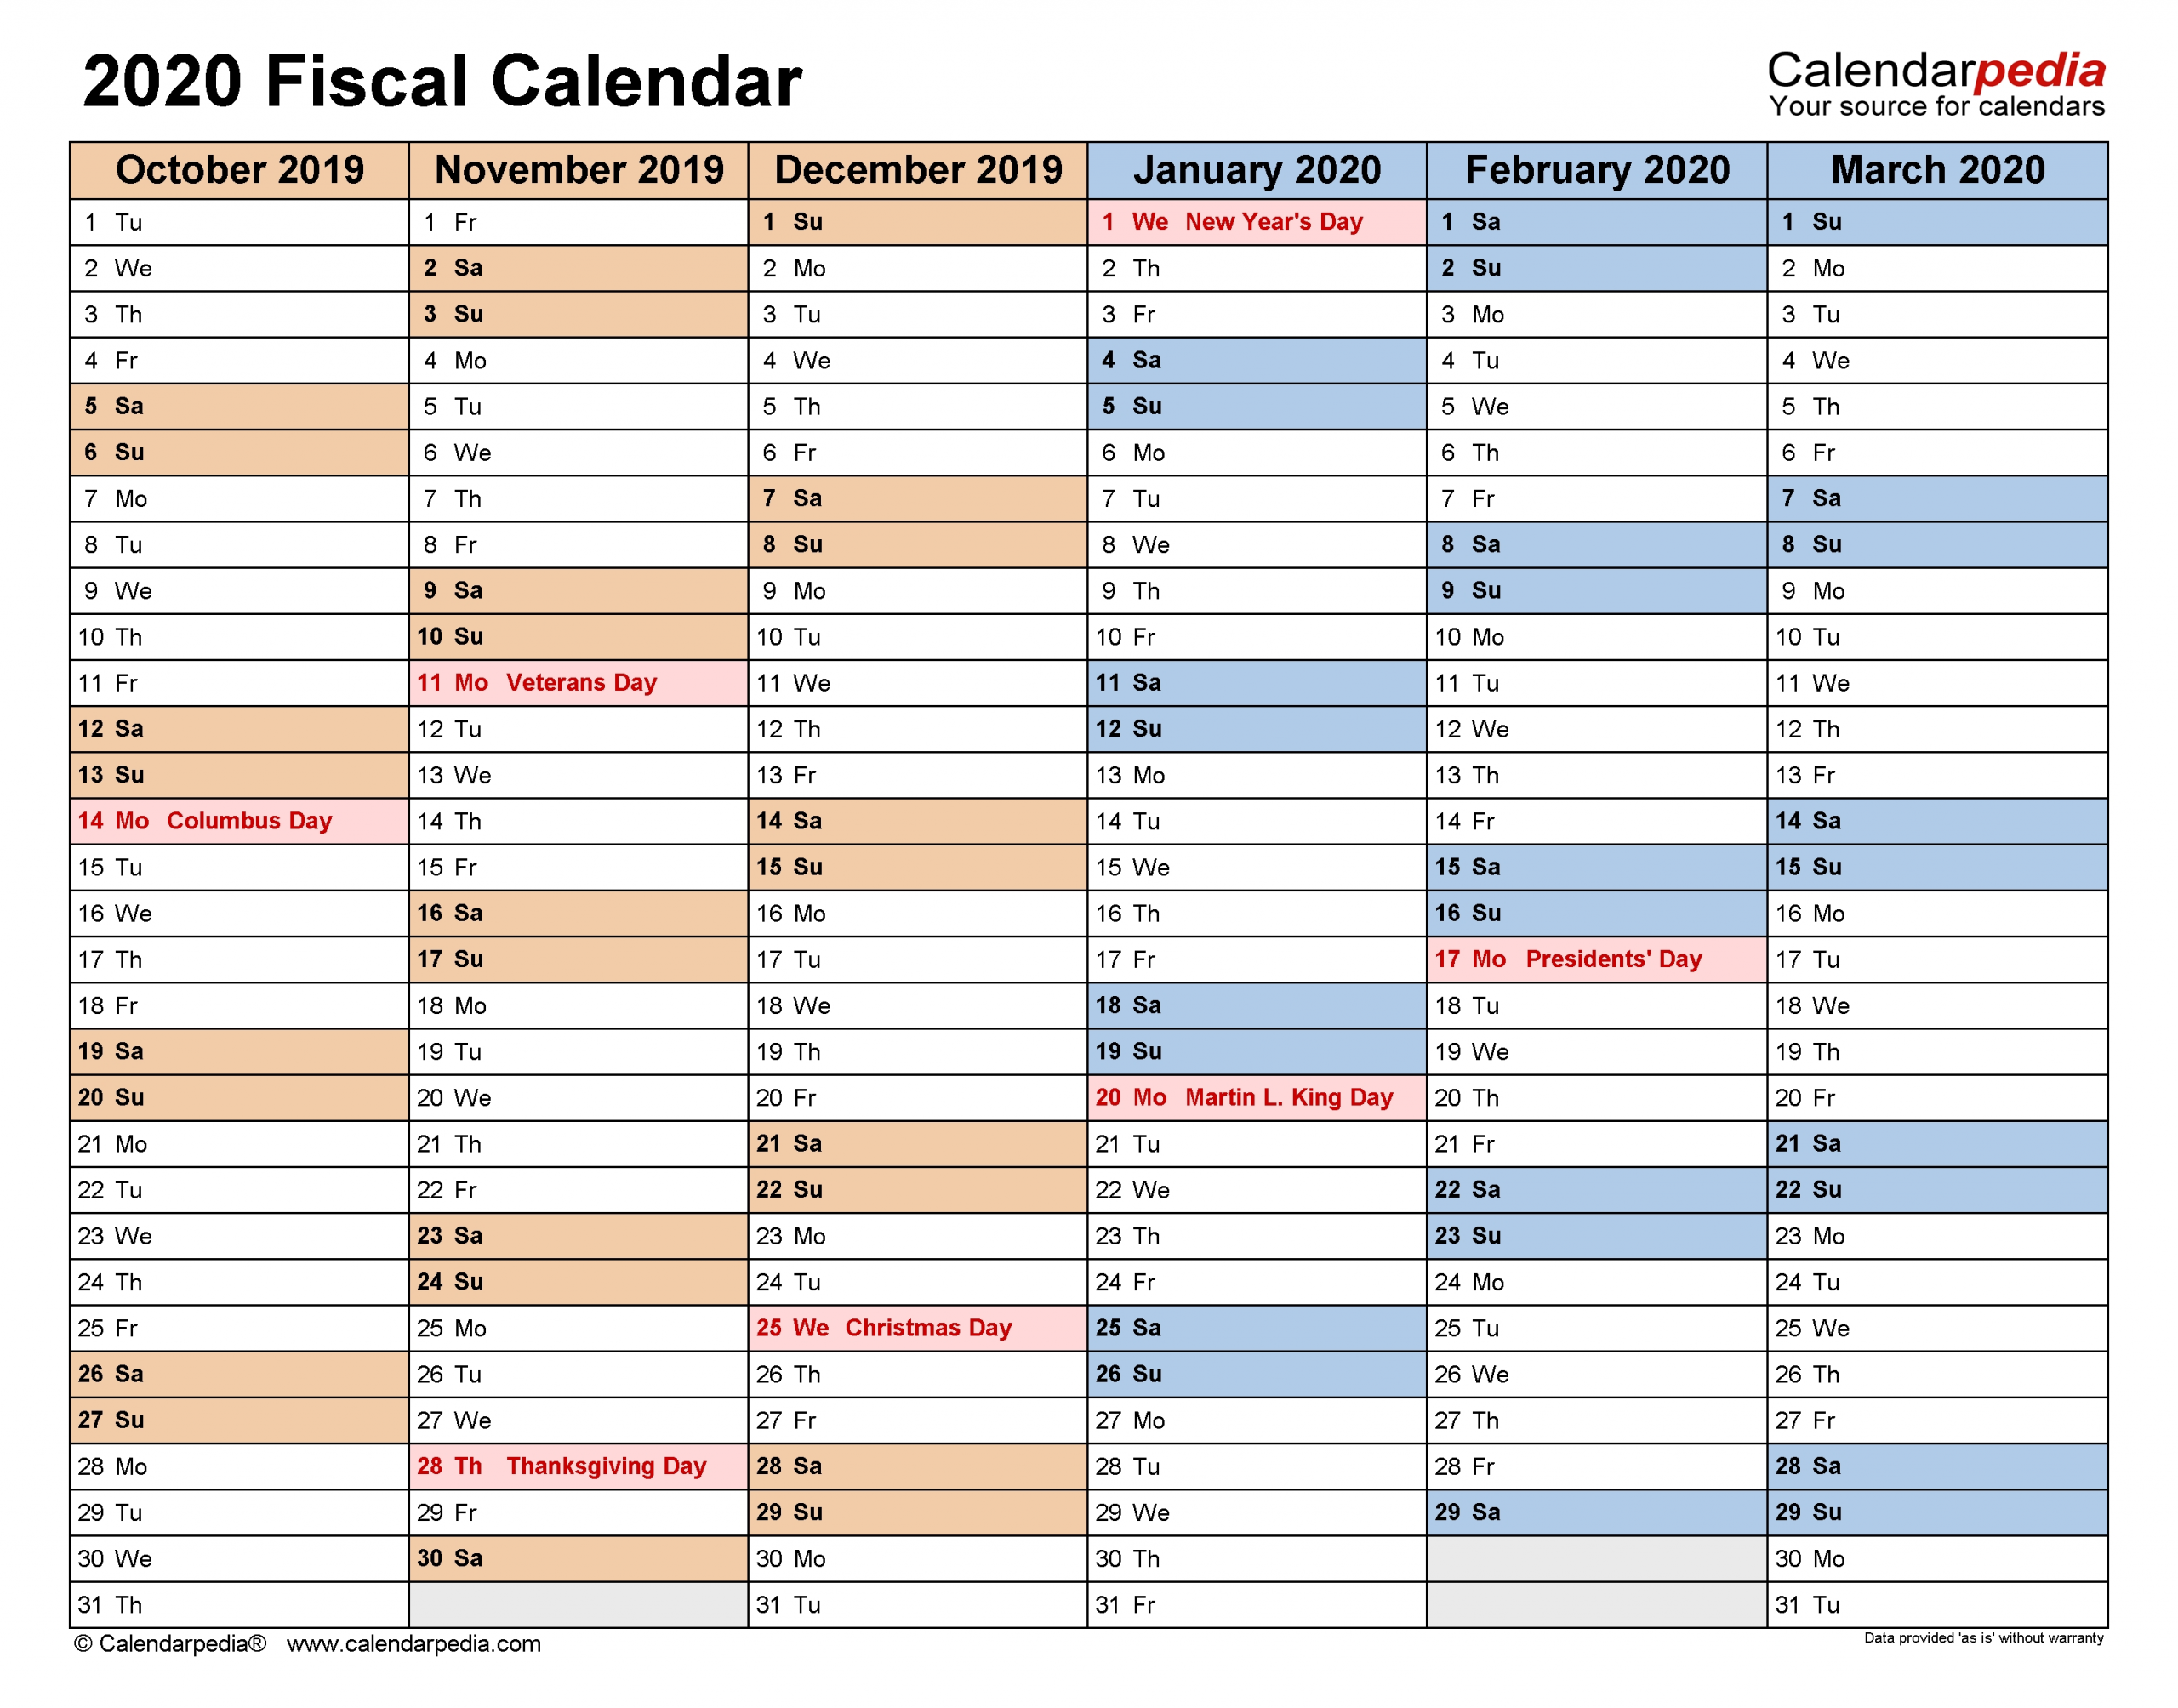 Pick What Week Of The Financial Year Are We In